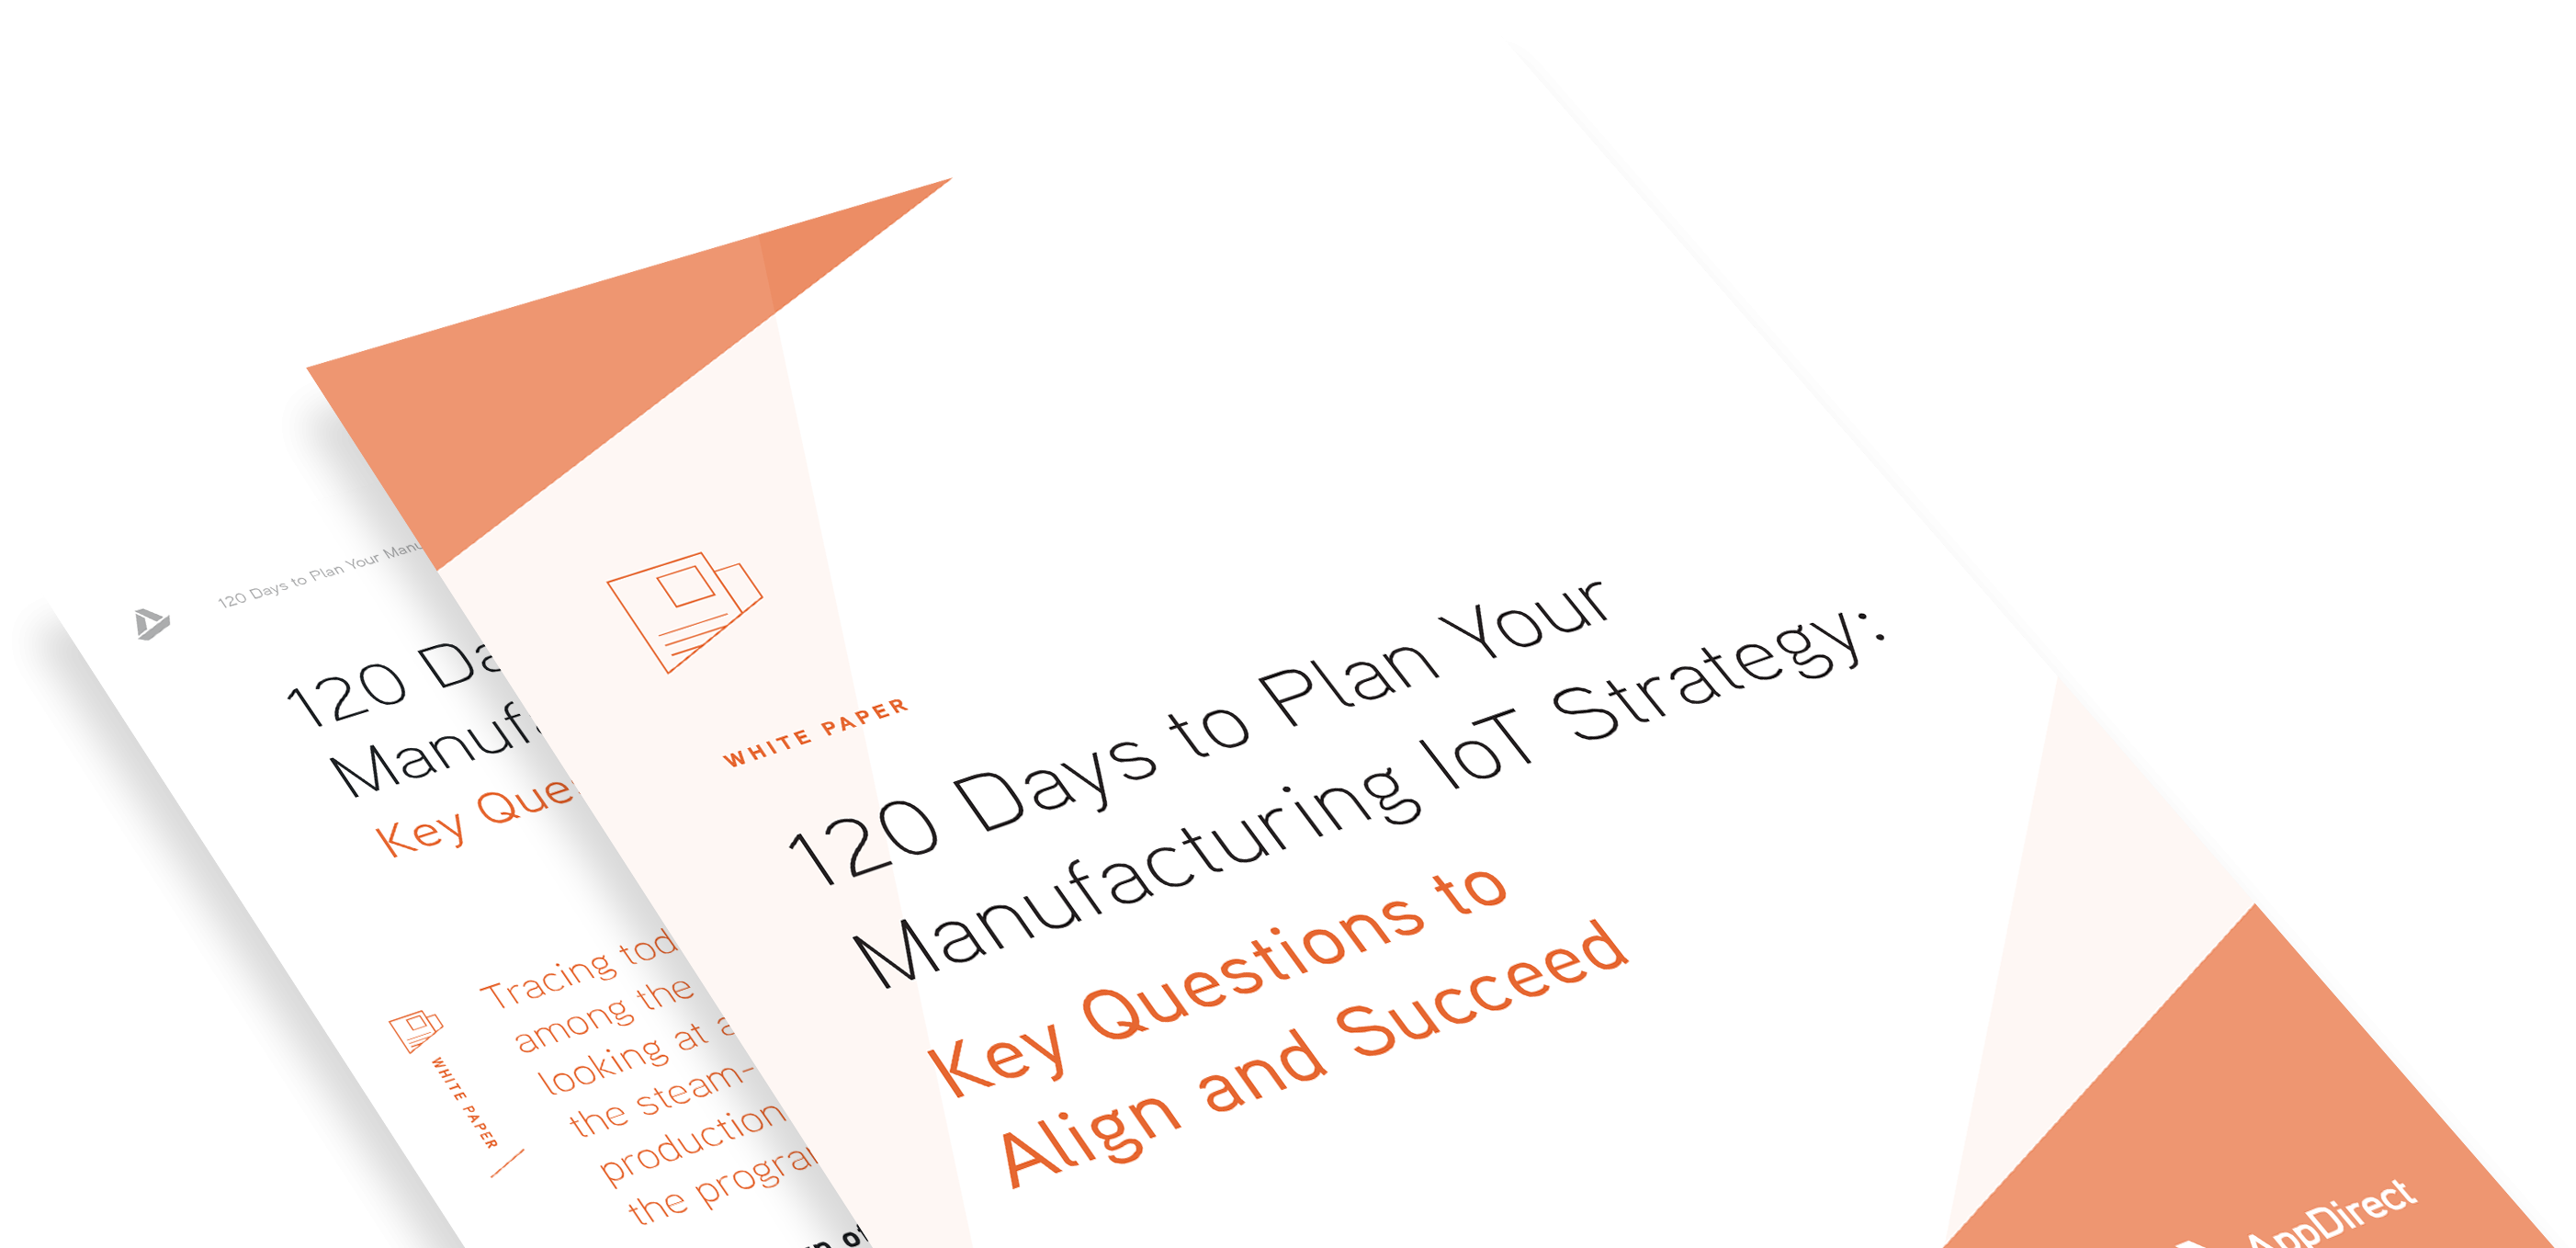 120 Days to Plan Your Manufacturing IoT Strategy